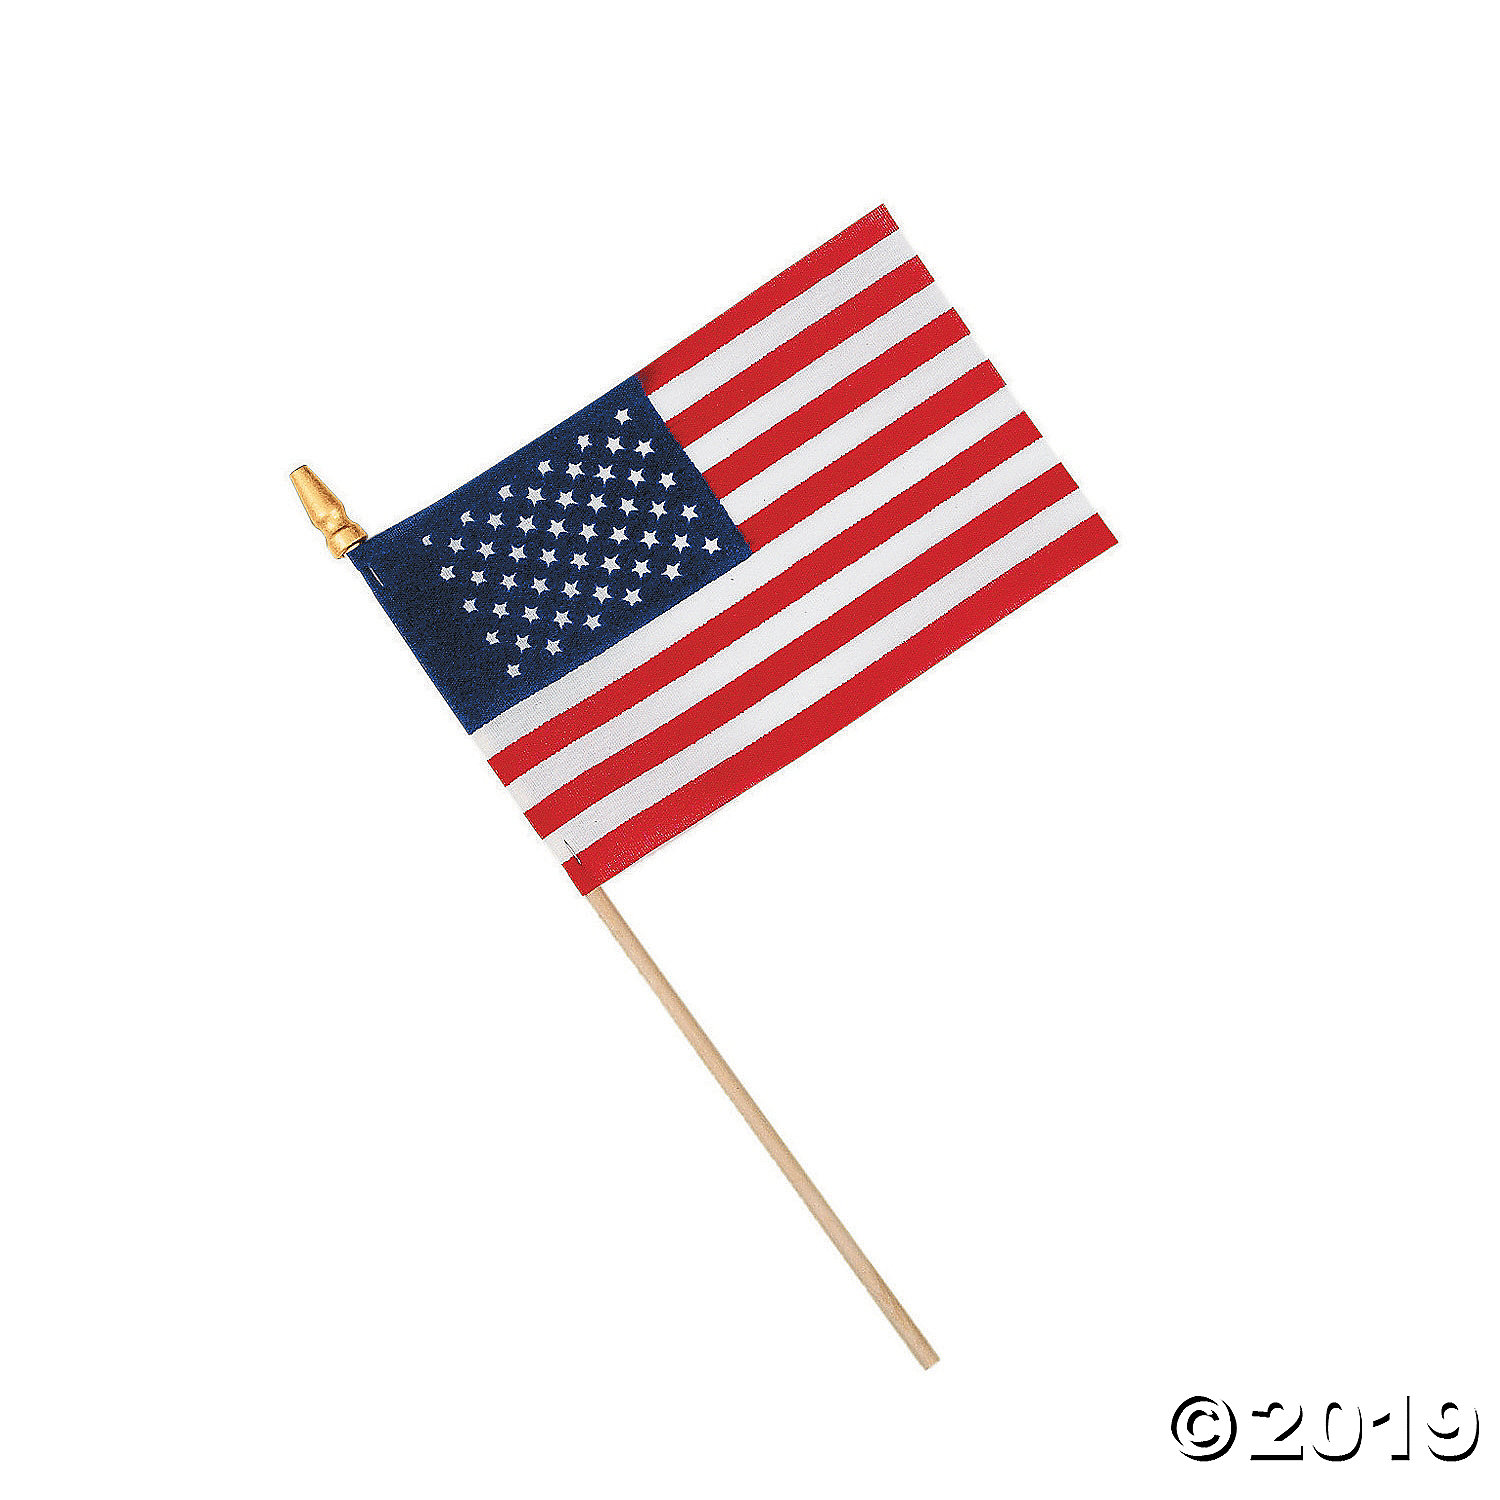 Small Cloth American Flags on Wooden Sticks.